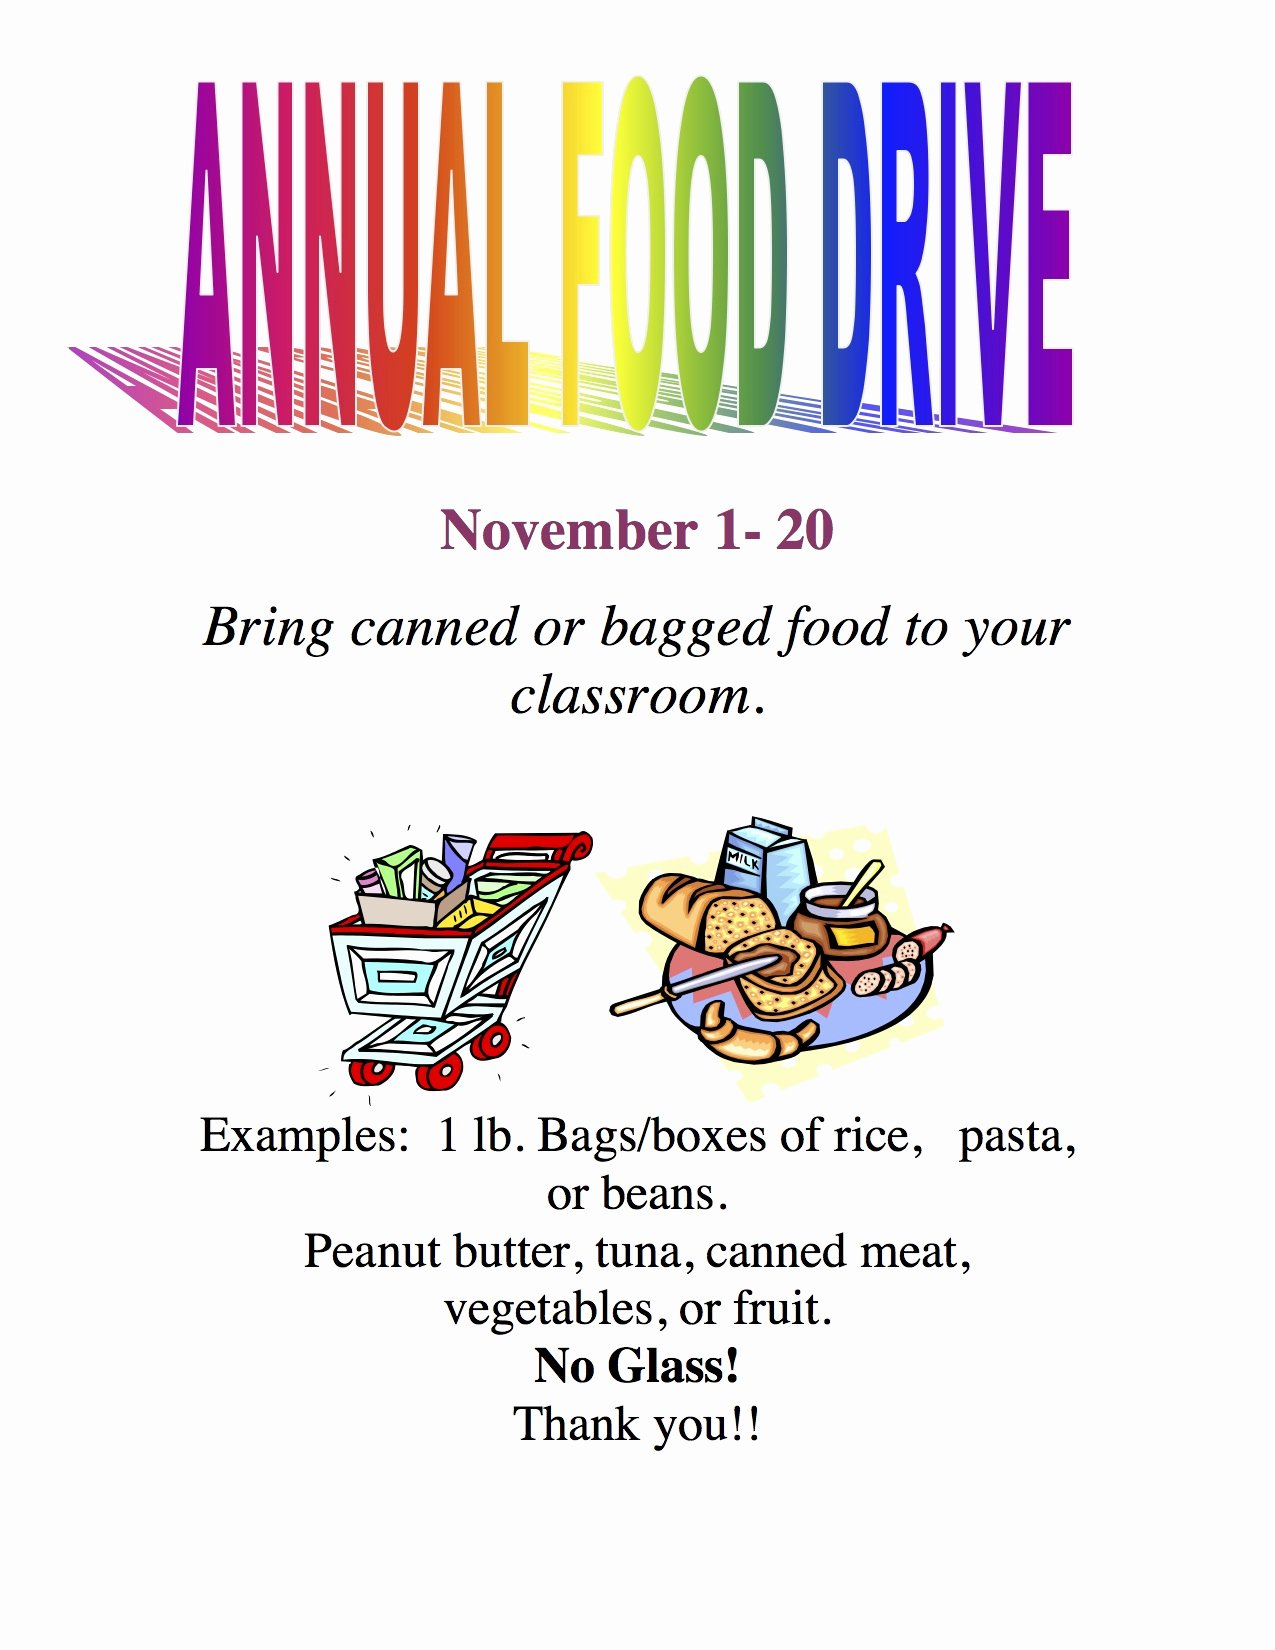 Canned Food Drive Flyer Template Luxury Current events… Camarena Elementary